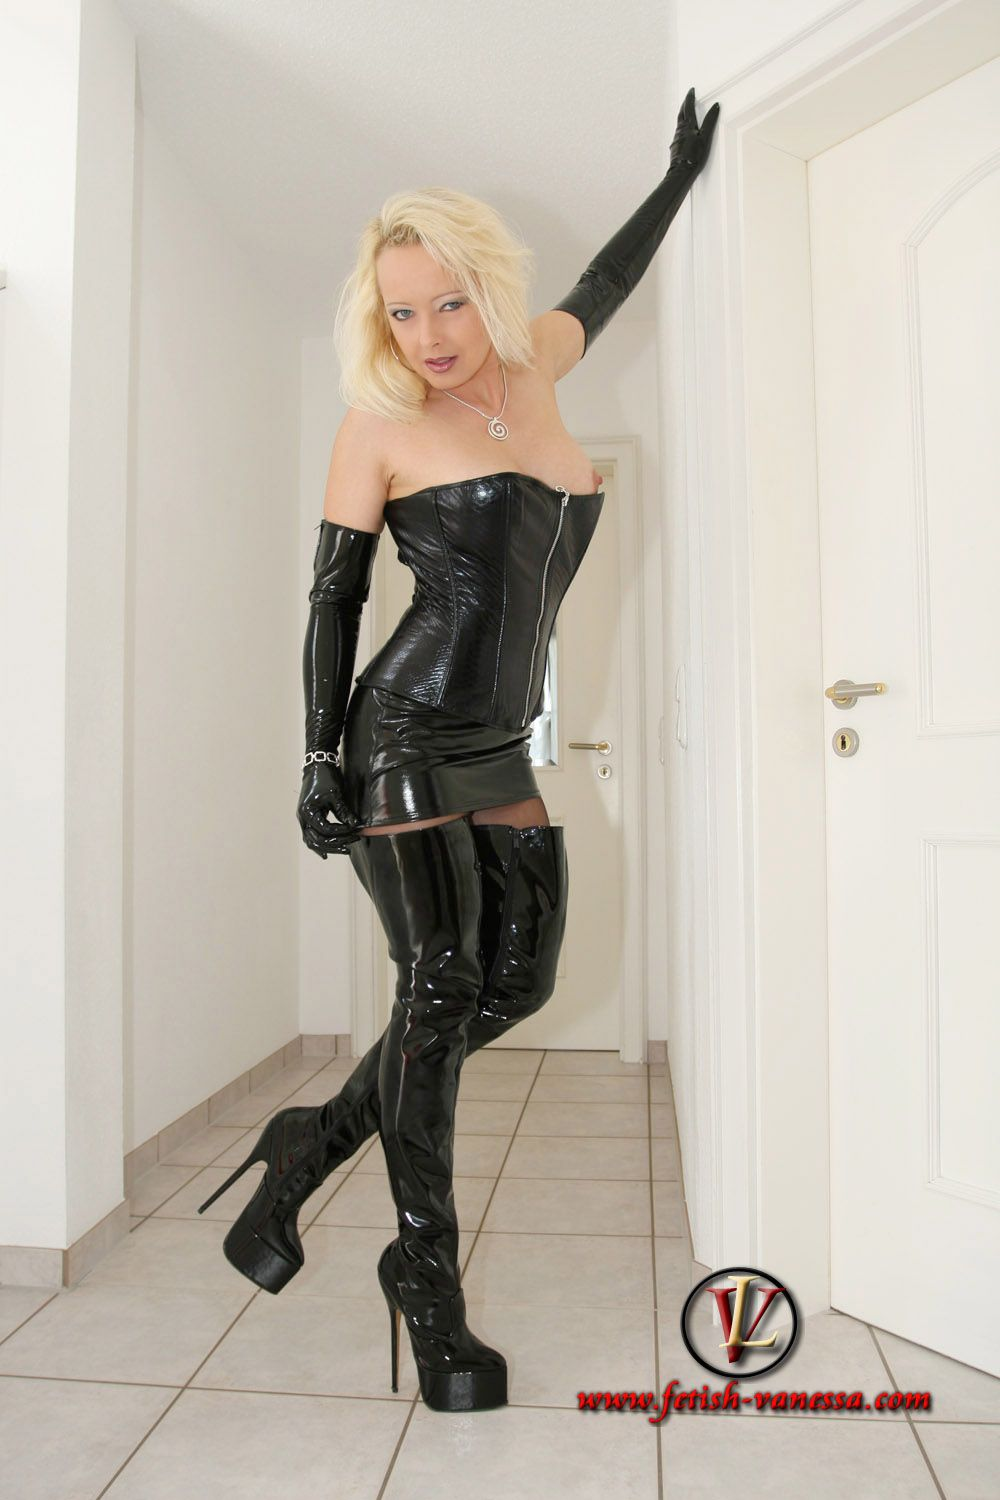 Mistress in leather tights domination - 1 3